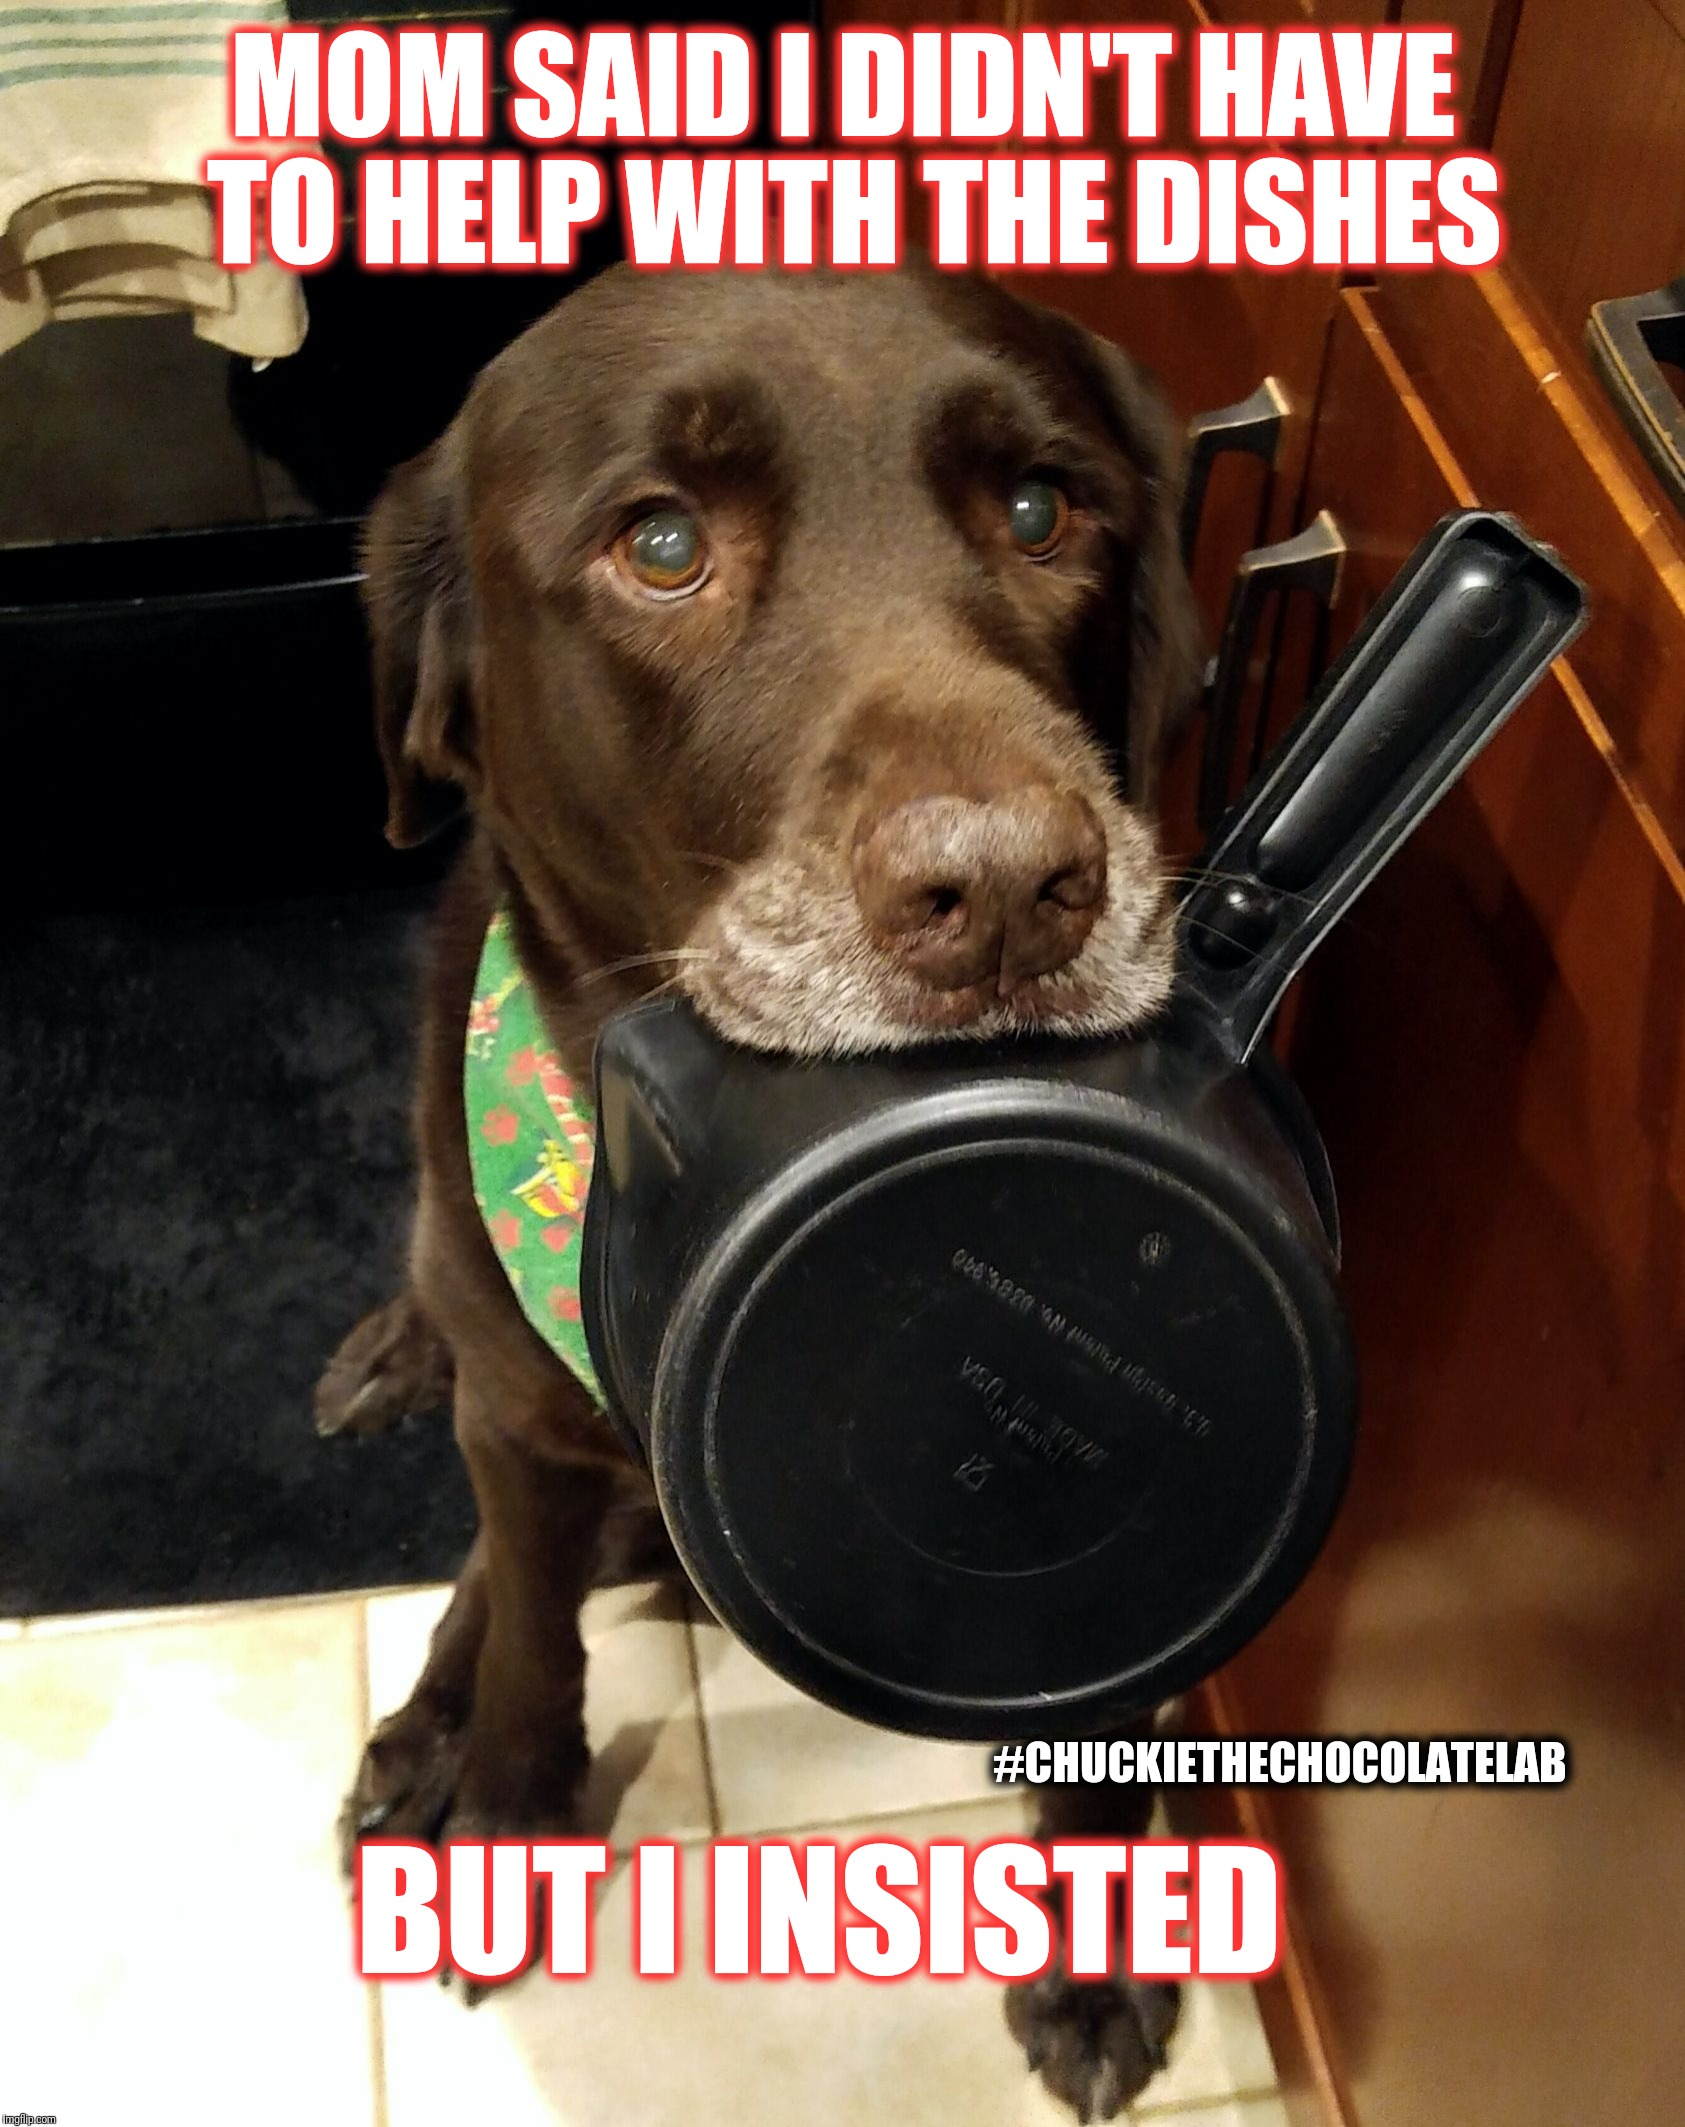 Helping with the dishes | MOM SAID I DIDN'T HAVE TO HELP WITH THE DISHES BUT I INSISTED #CHUCKIETHECHOCOLATELAB | image tagged in chuckie the chocolate lab teamchuckie,funny,memes,cute,dogs,dishes | made w/ Imgflip meme maker